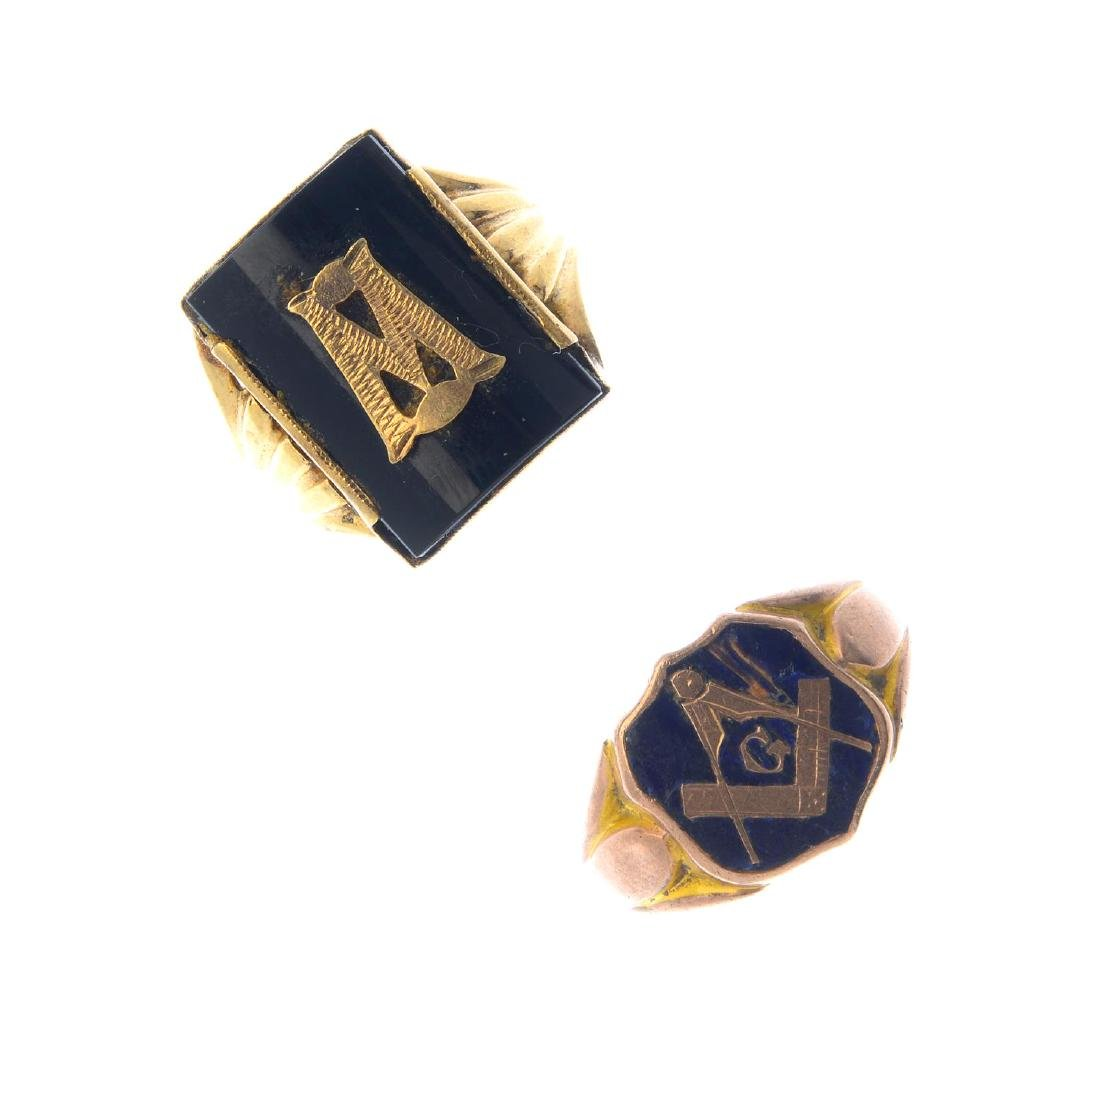 Two early 20th century Masonic signet rings. The first